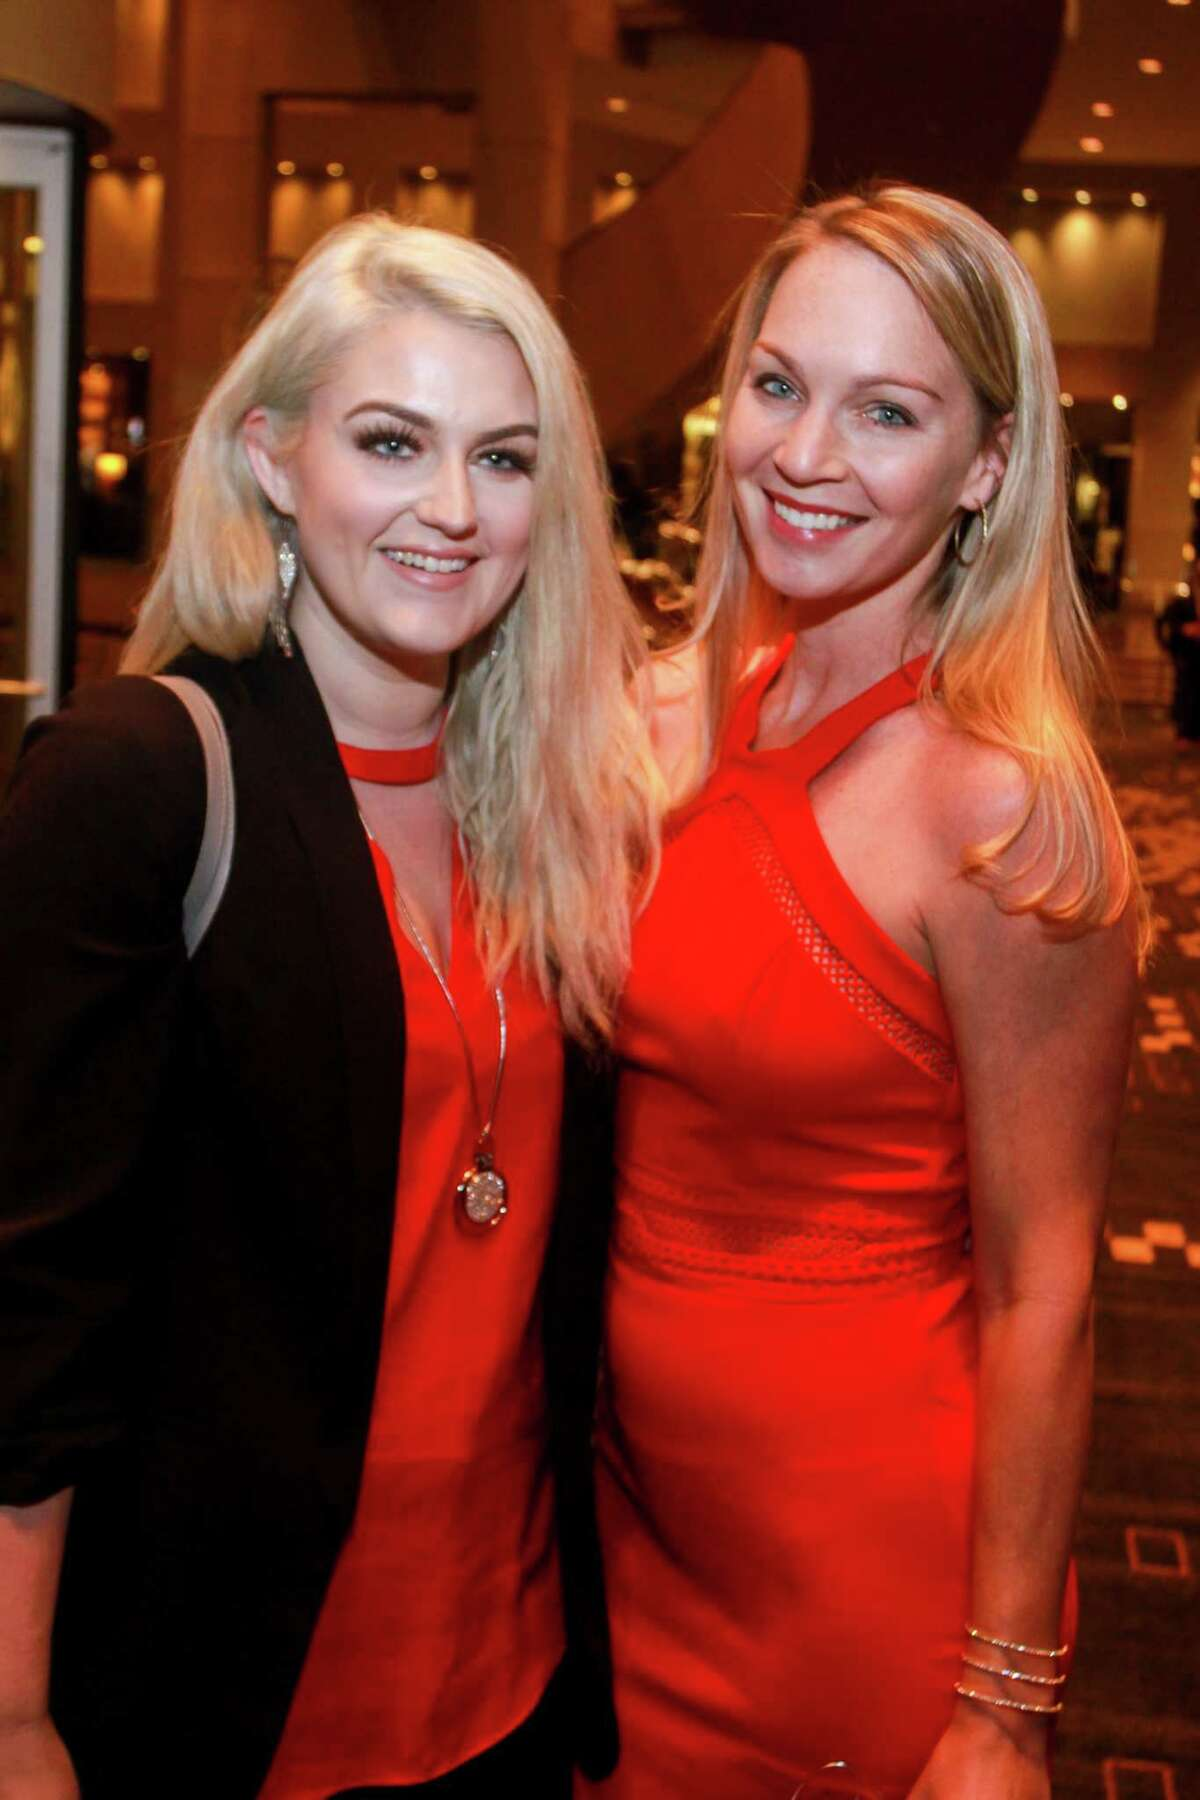 Rebecca Chiasson, left, and Pysha Motes at Spec's Vintage Virtuoso hosted by Spec's Charitable Foundation, and benefiting the Houston Symphony, at Royal Sonesta Hotel on December 4, 2019.